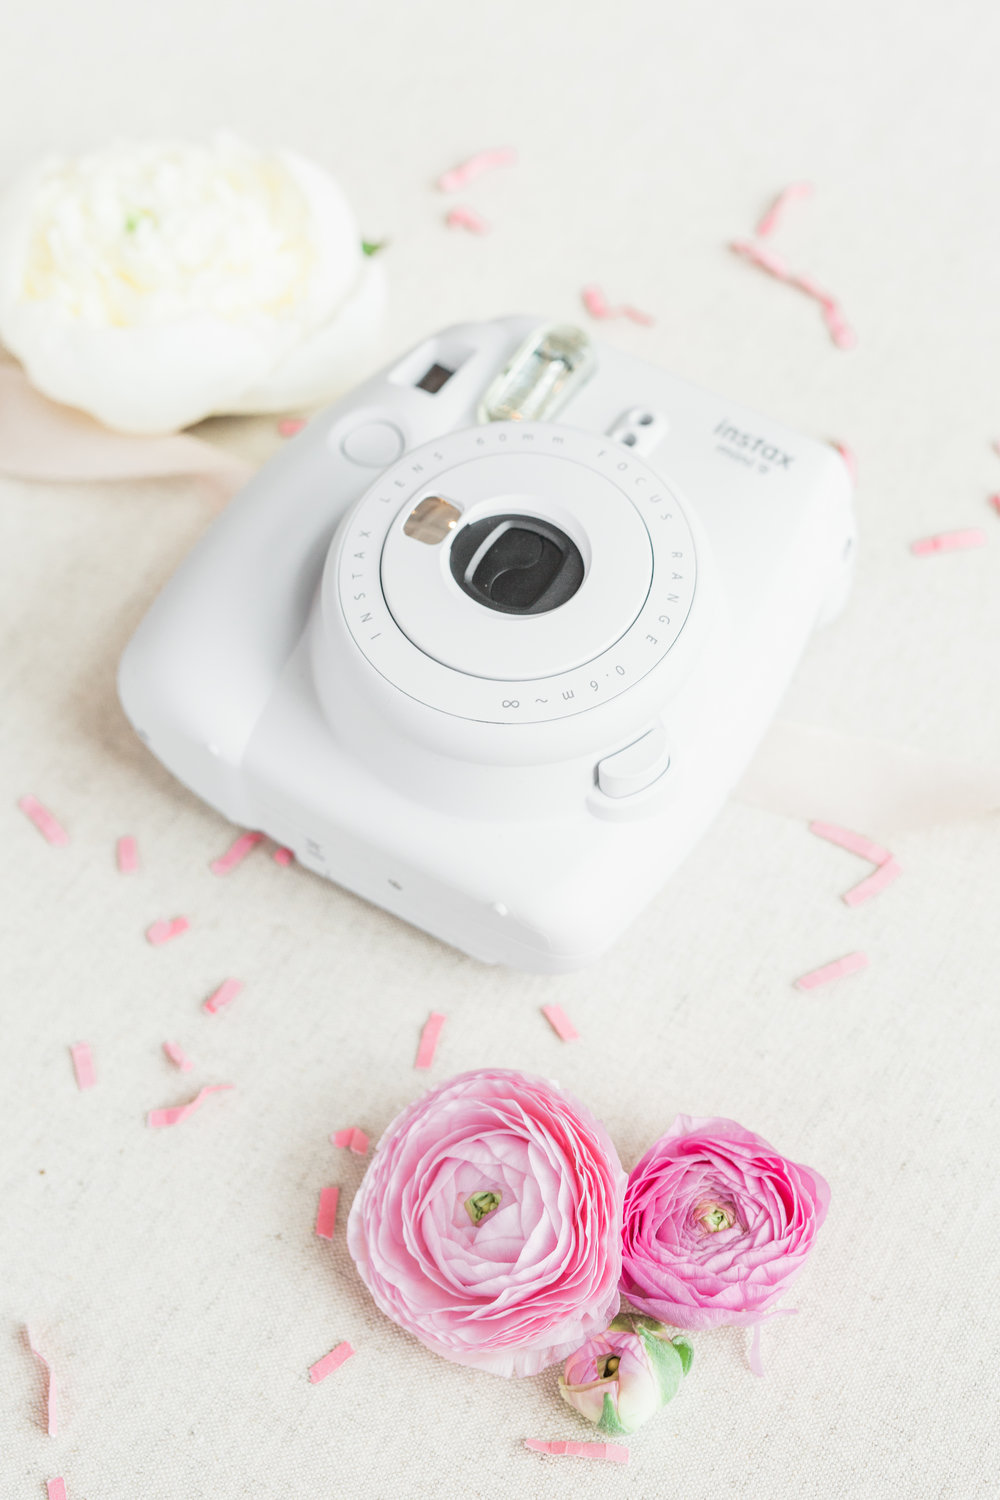 Instax Polaroid Camera from Urban Outfitters